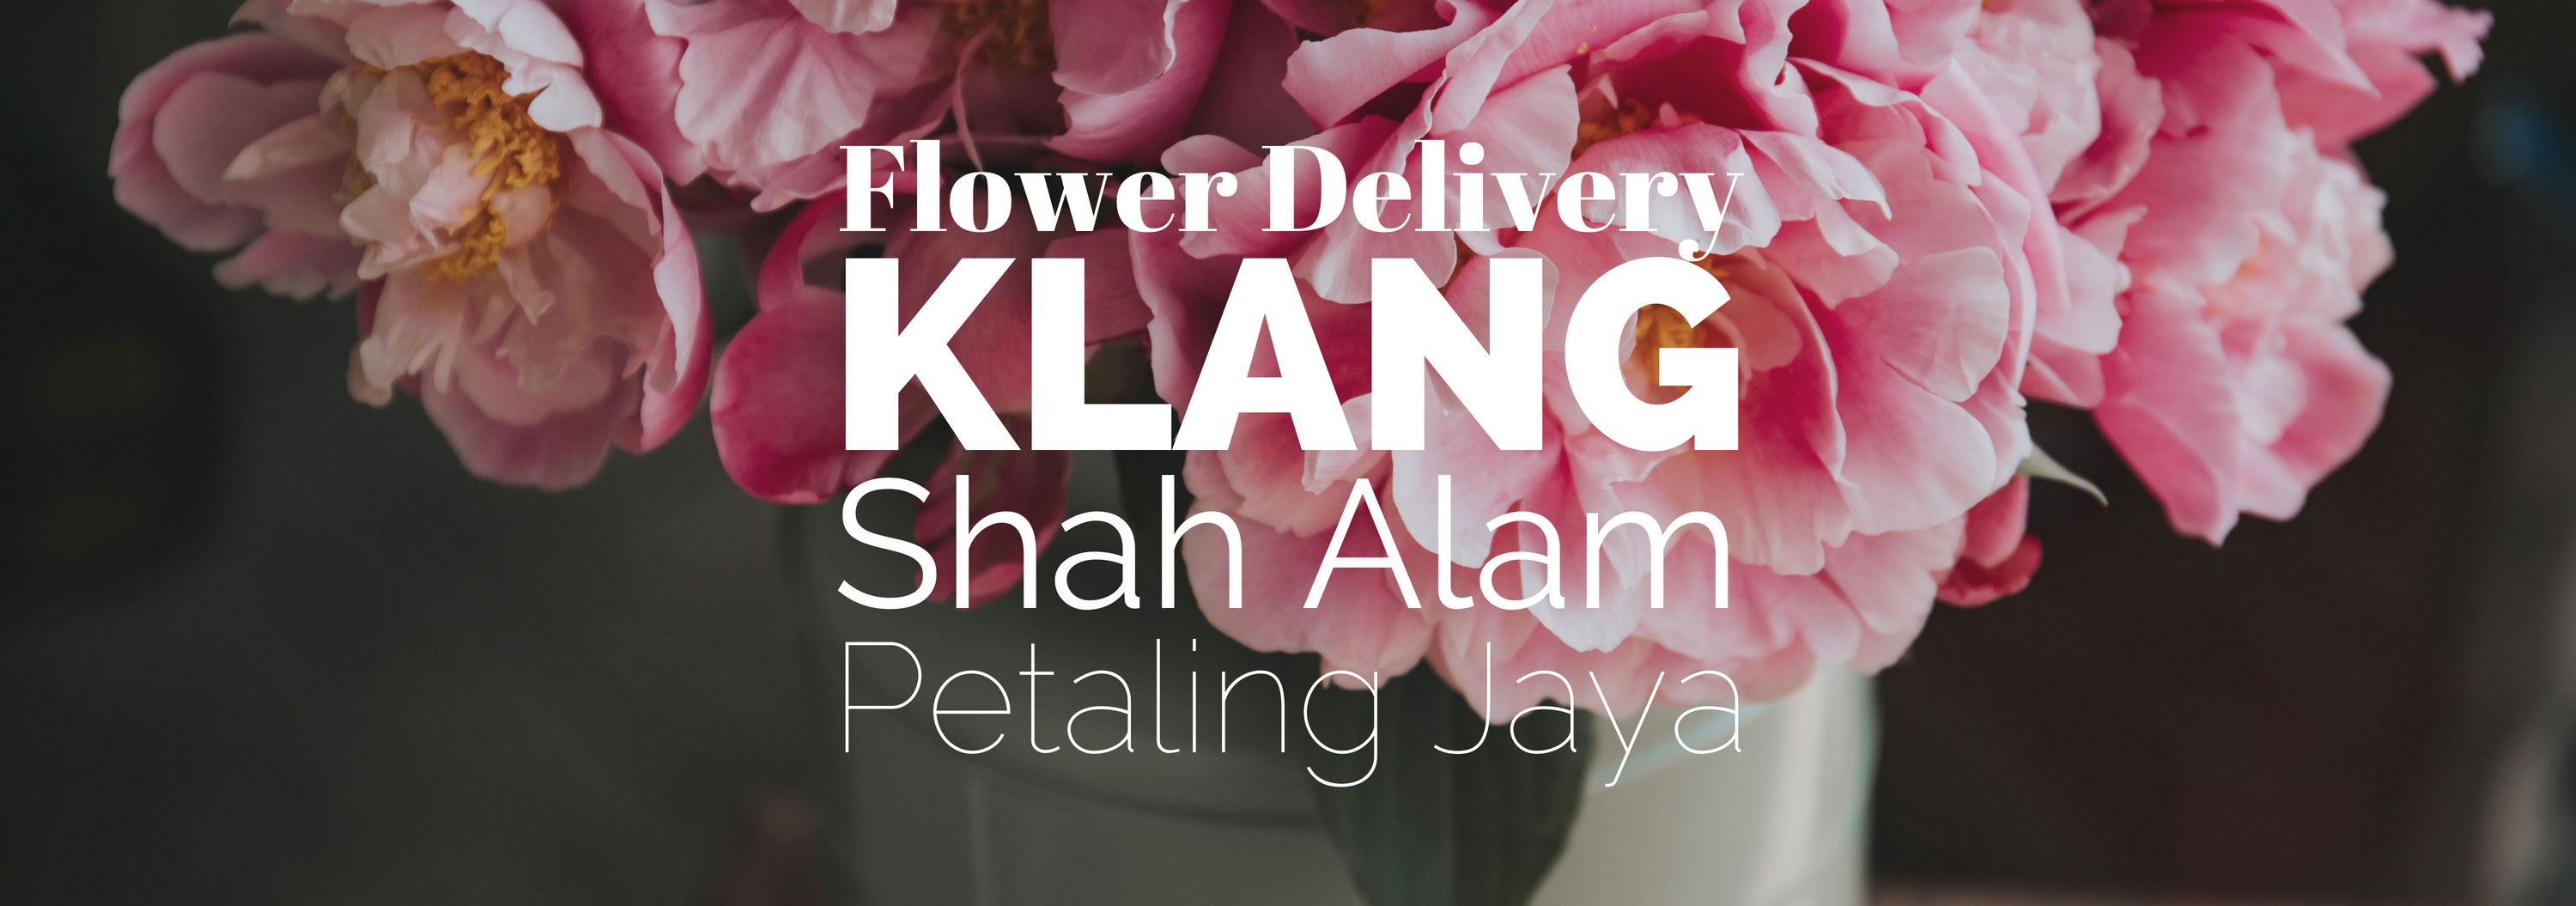 8 Best Options For Flower Delivery In Klang Shah Alam And Petaling